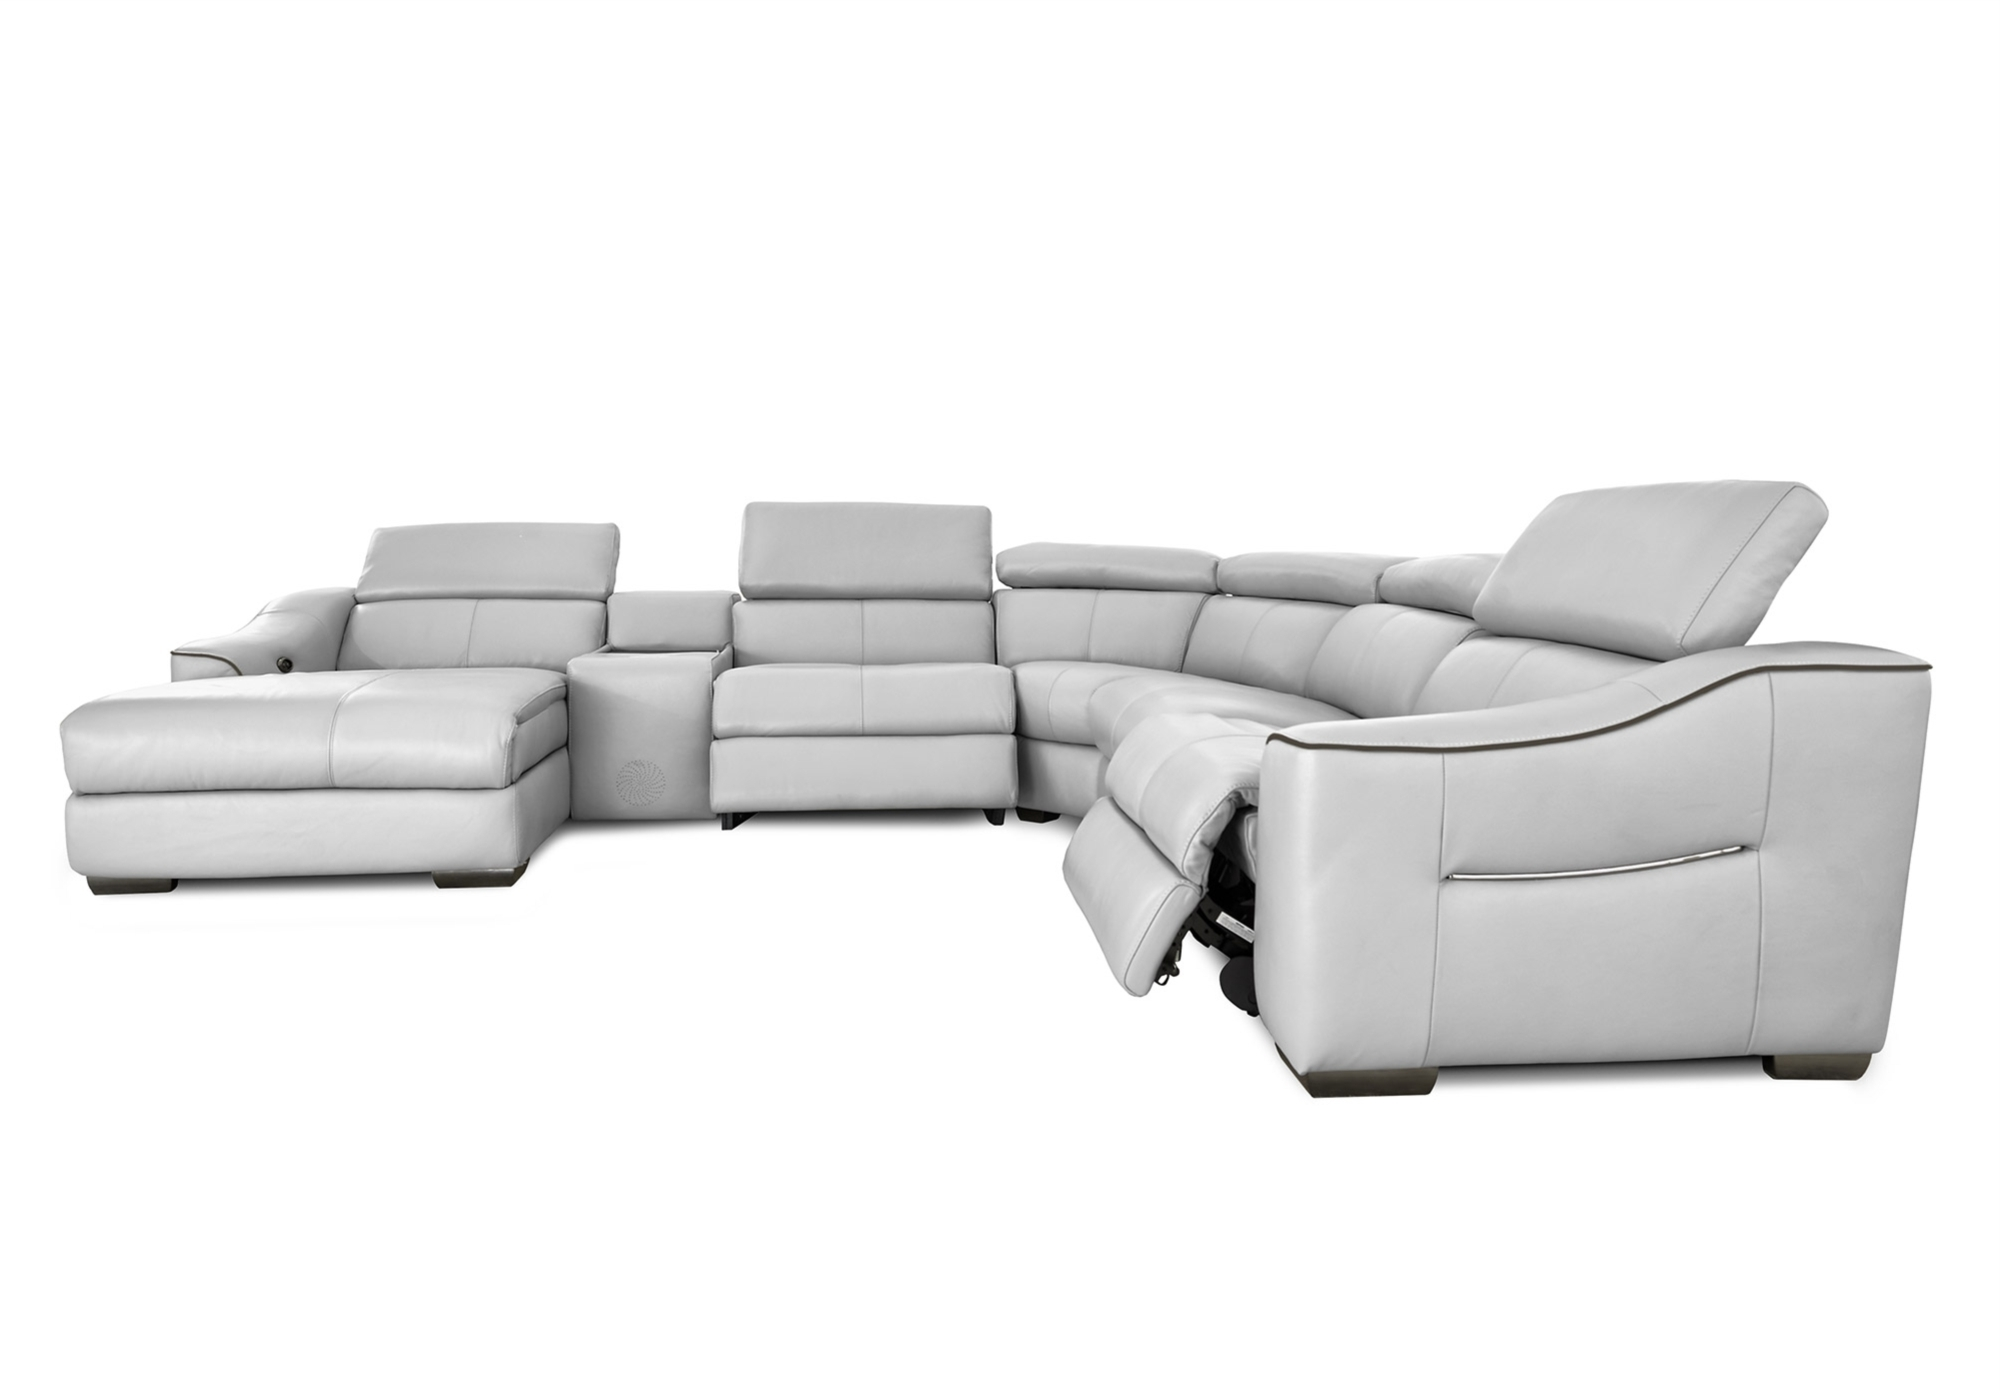 Rhf Corner Chaise Sofa – Elixir – Gorgeous Living Room Furniture Pertaining To Most Recent Corner Chaises (View 13 of 15)